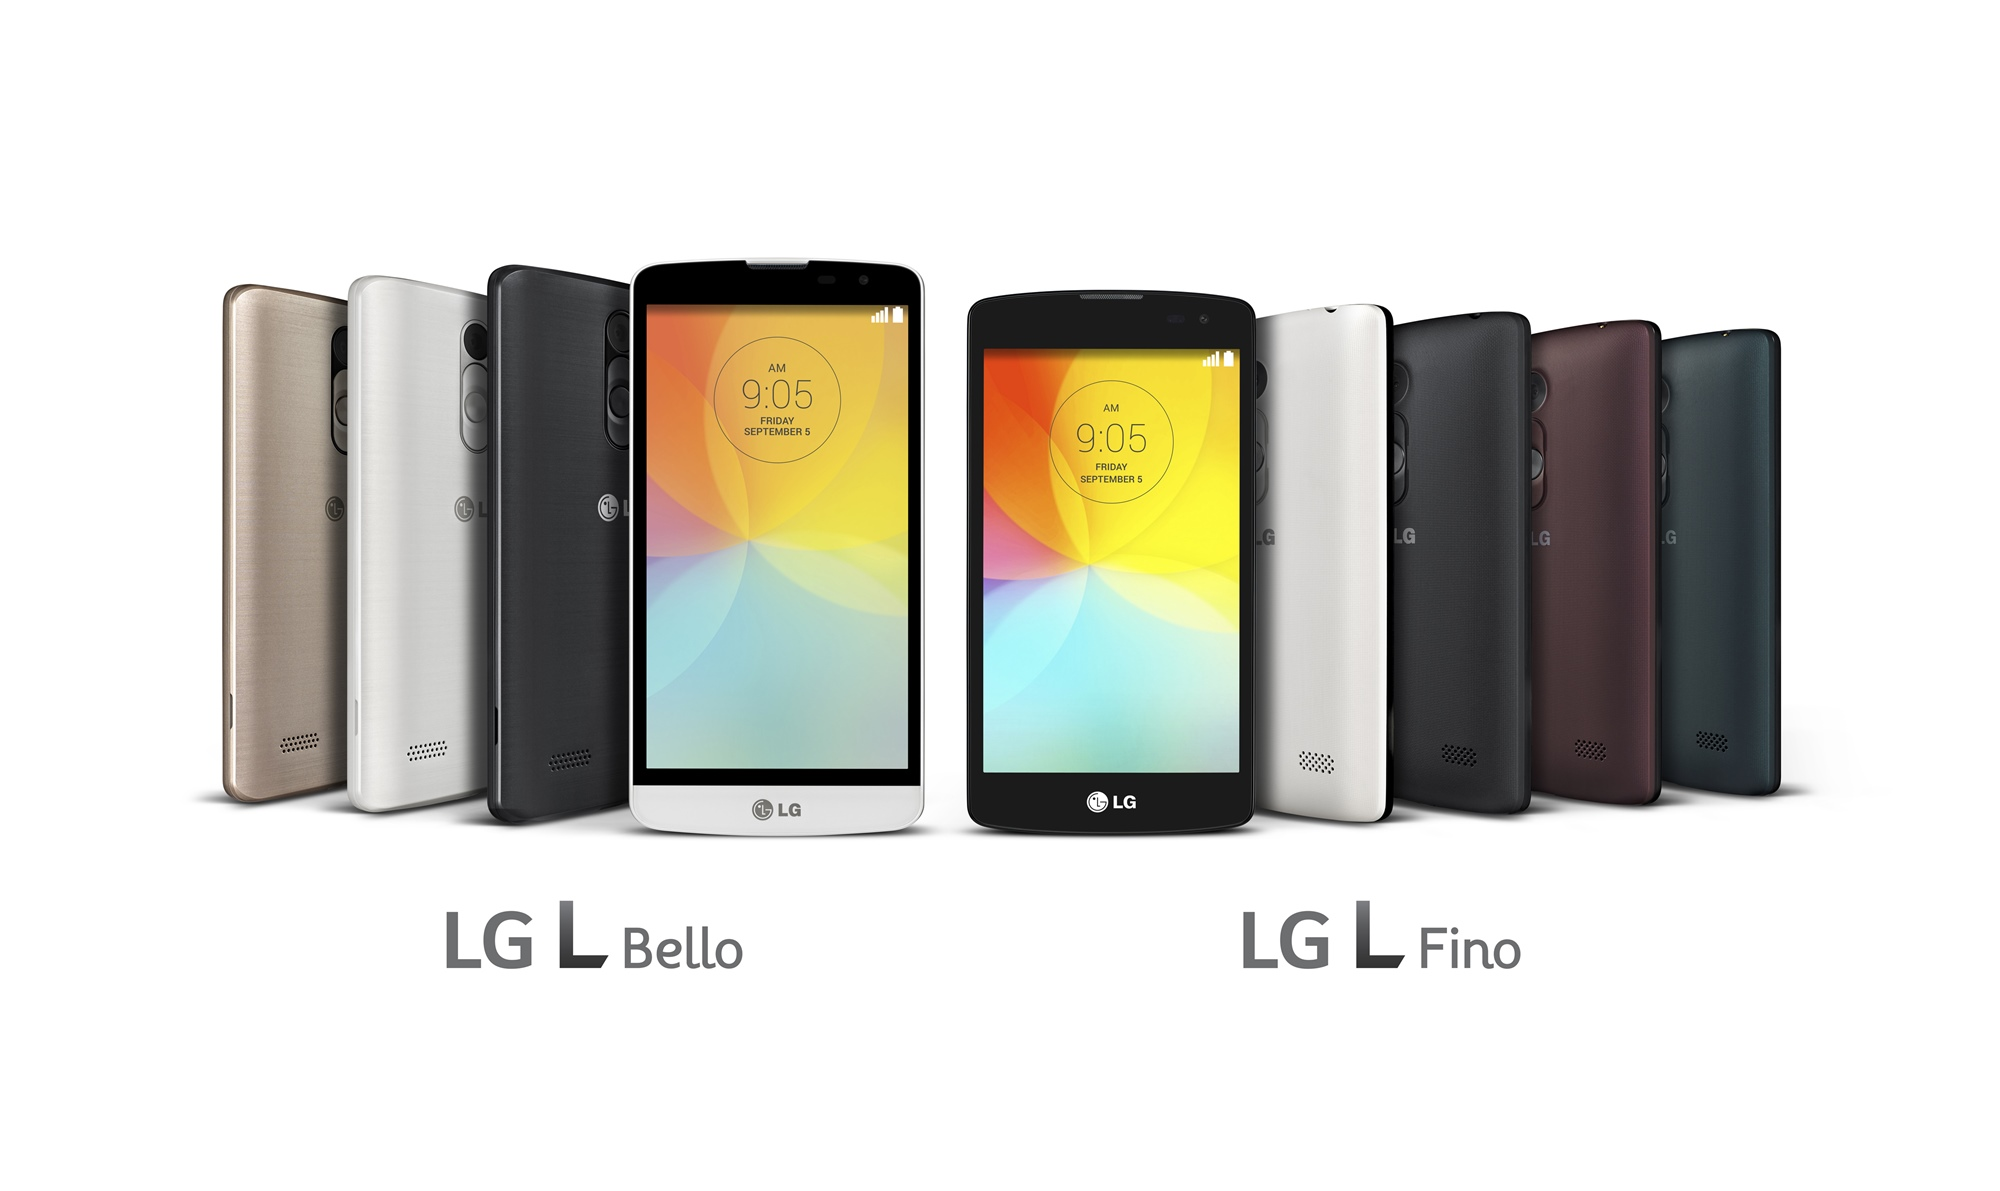 LG Electronics will unveil a pair of its newest smartly-priced L Series smartphones at IFA 2014 in Berlin. (image credit: LG Electronics)